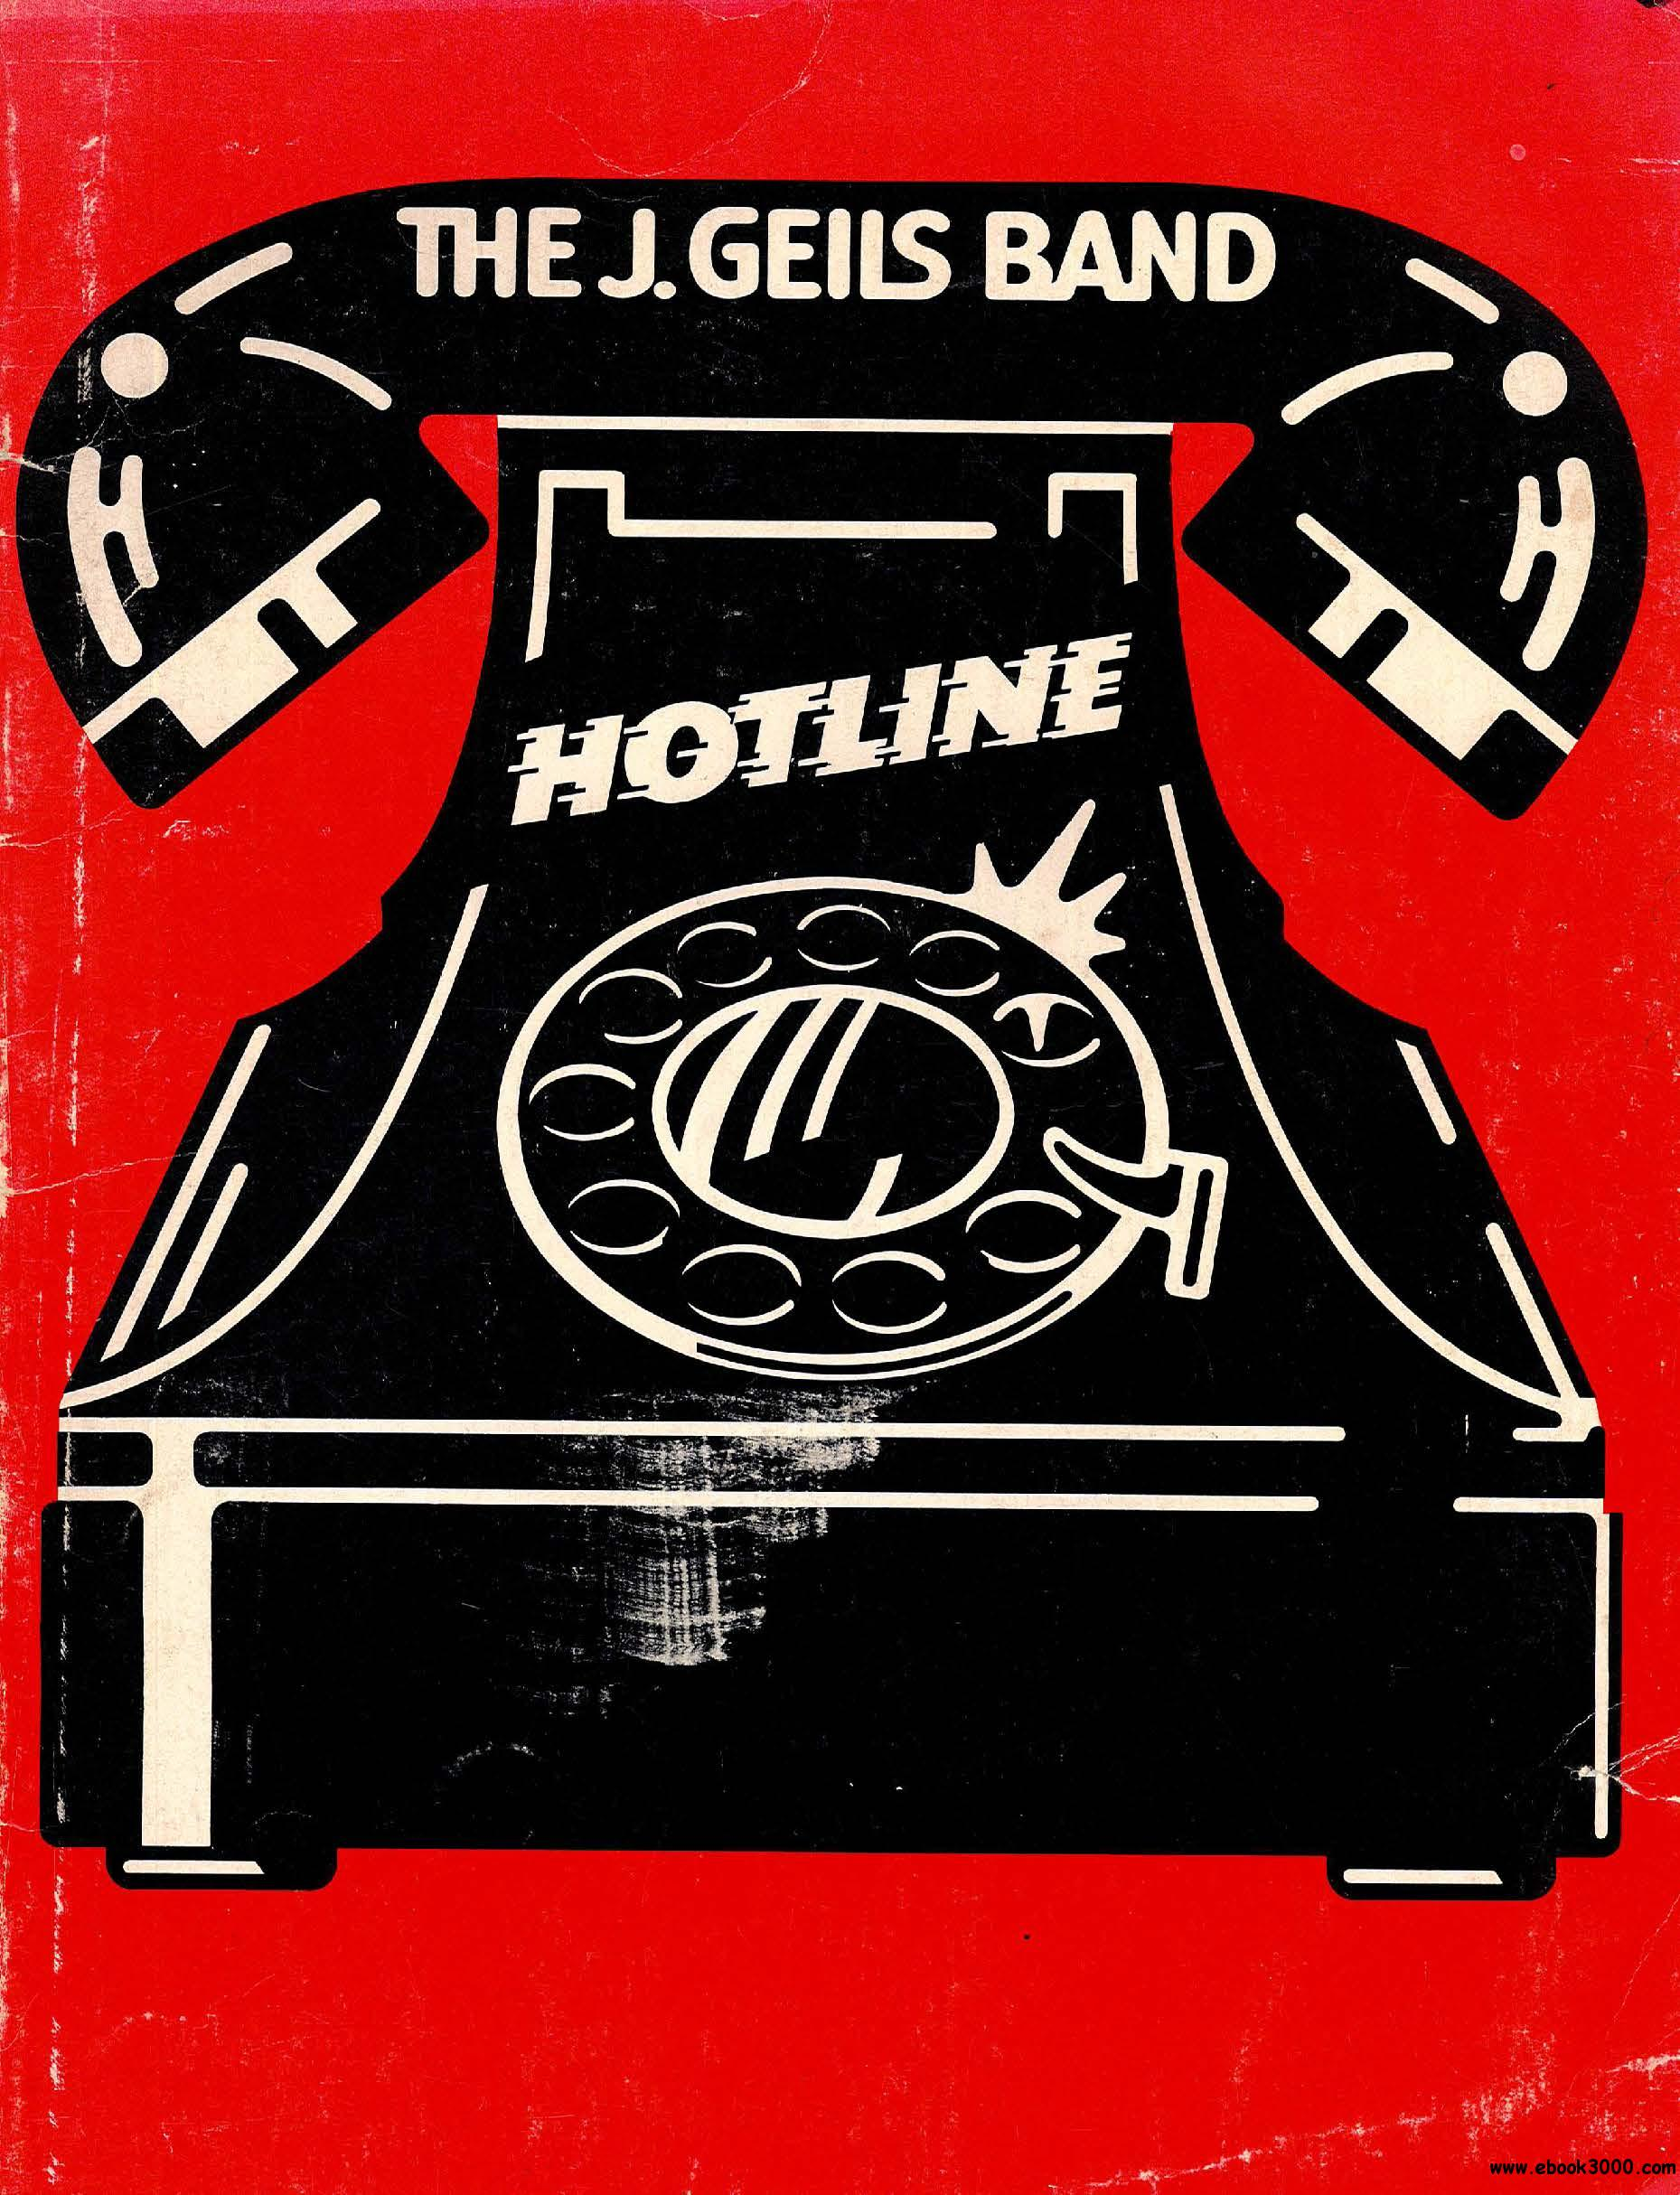 The J. Geils Band - Hotline free download